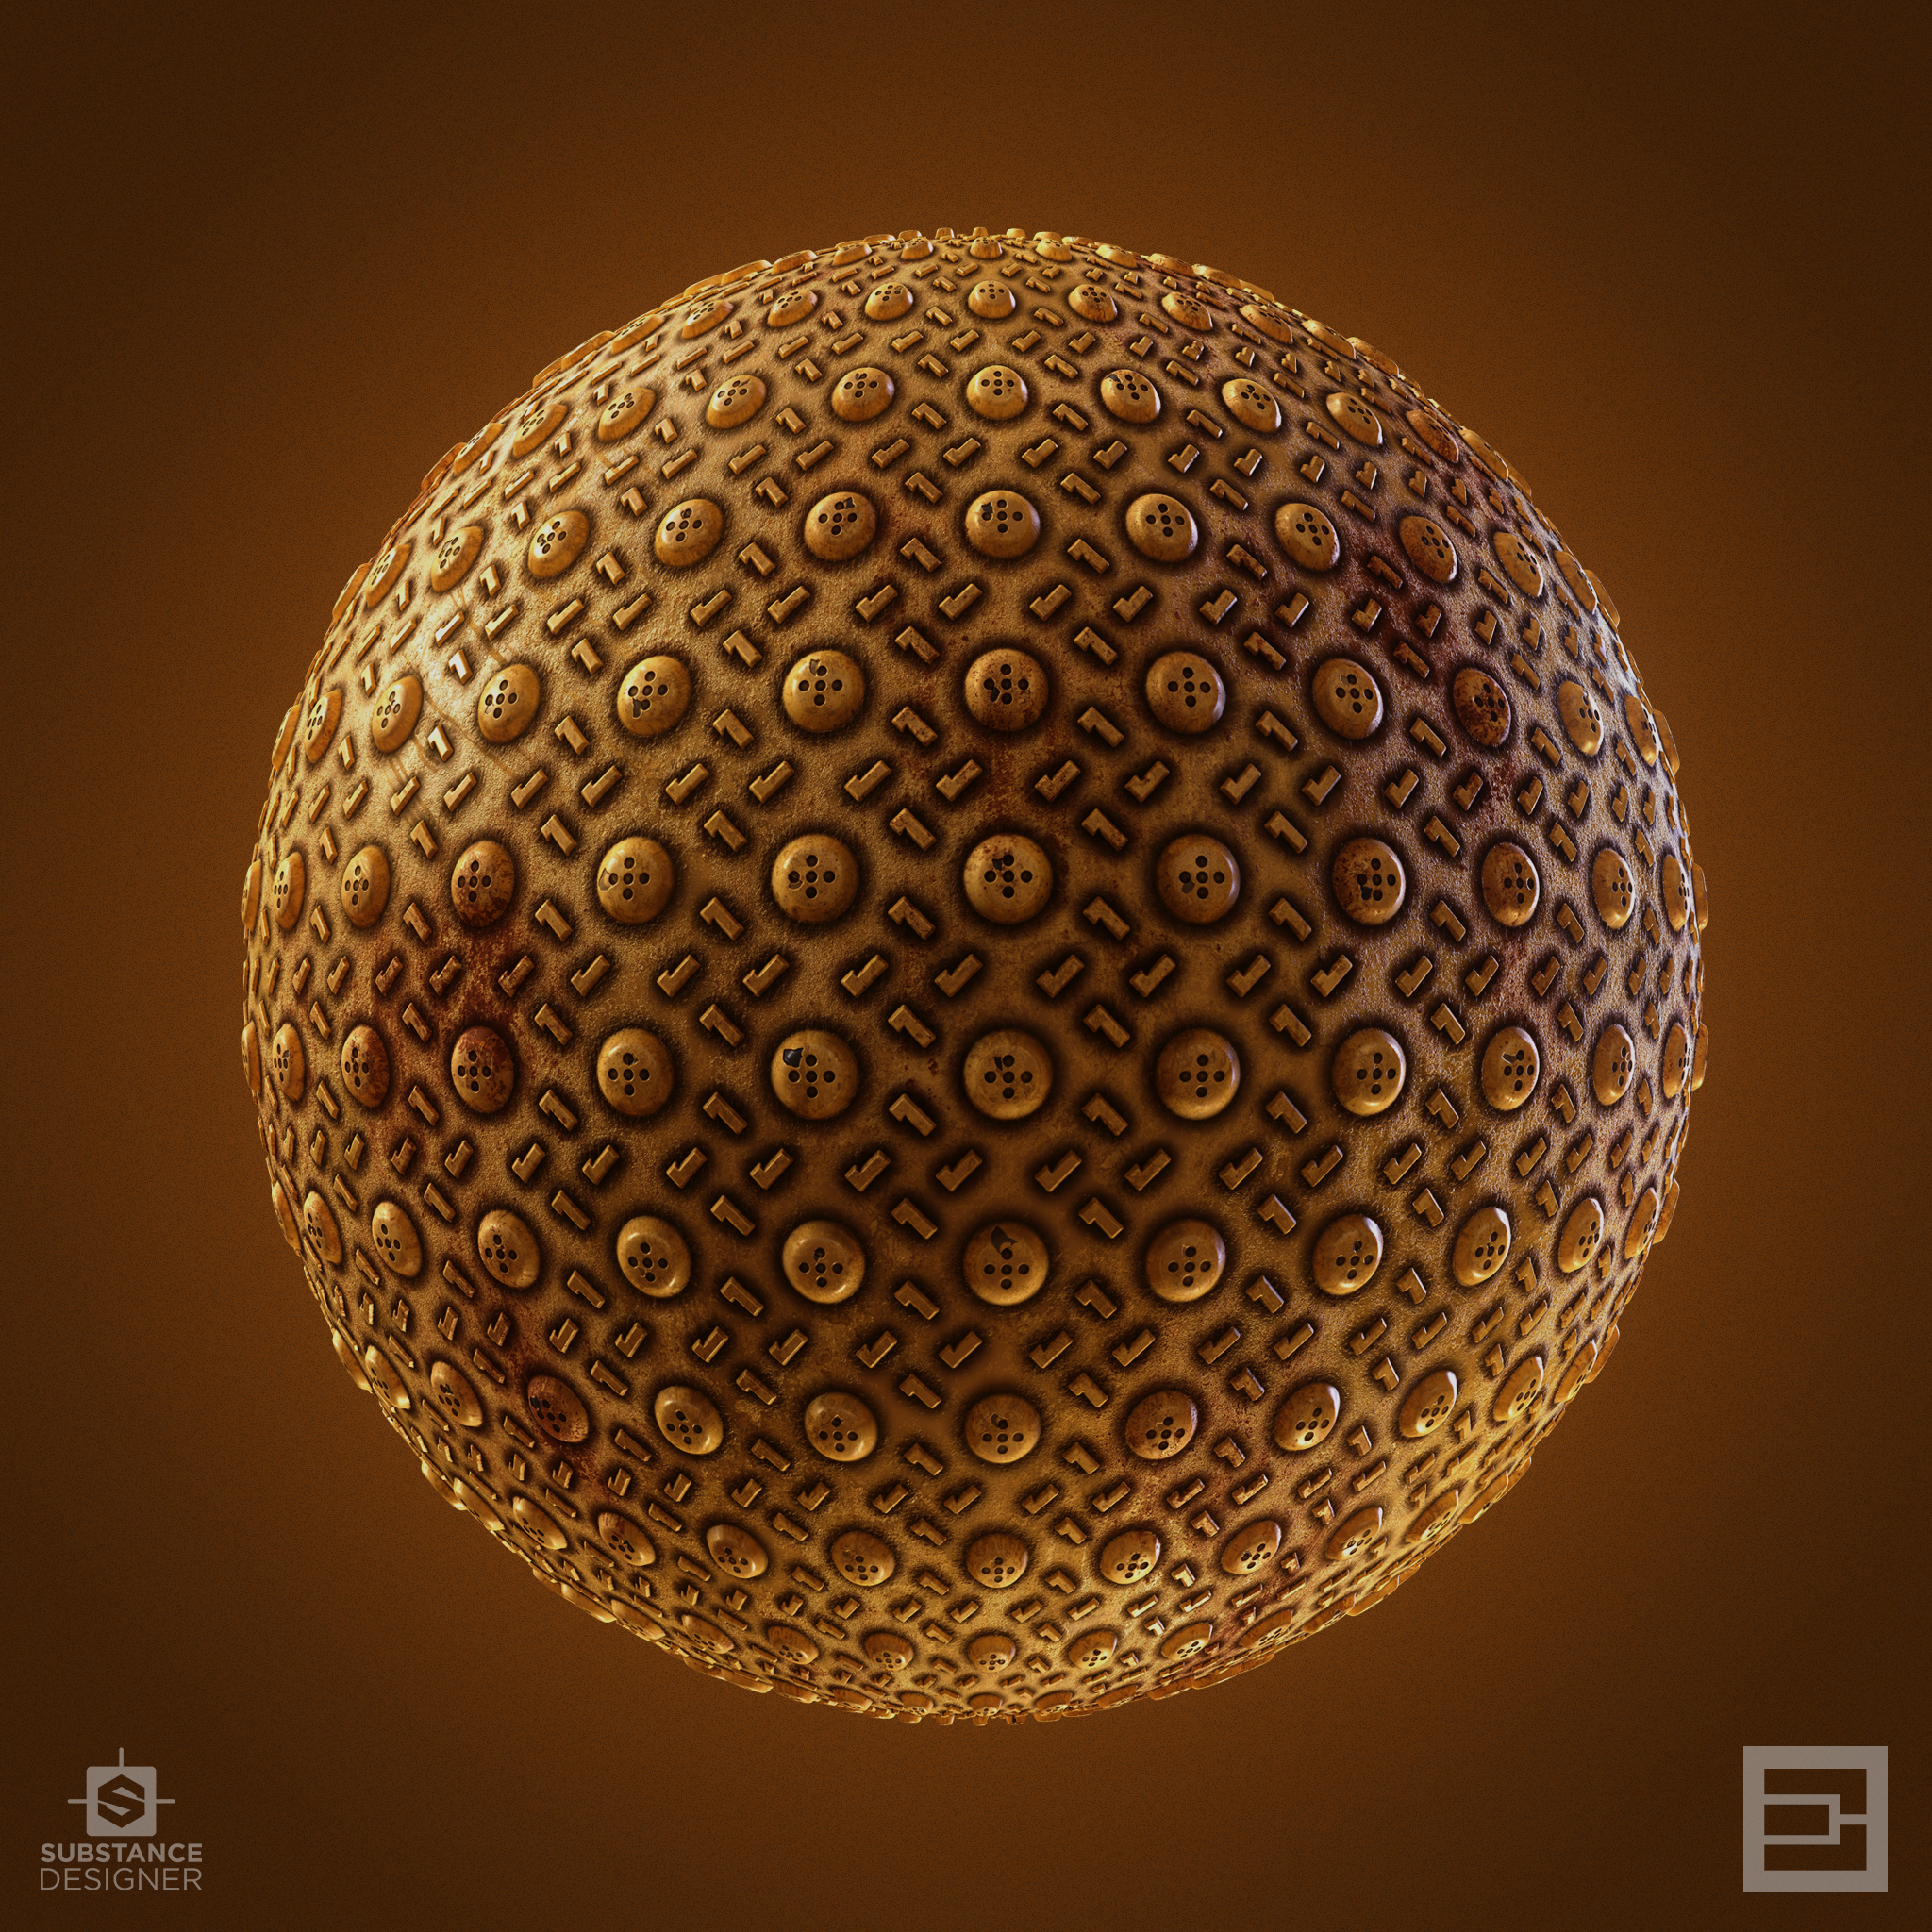 MetalBase_YellowBumps_01_Sphere_02.jpg